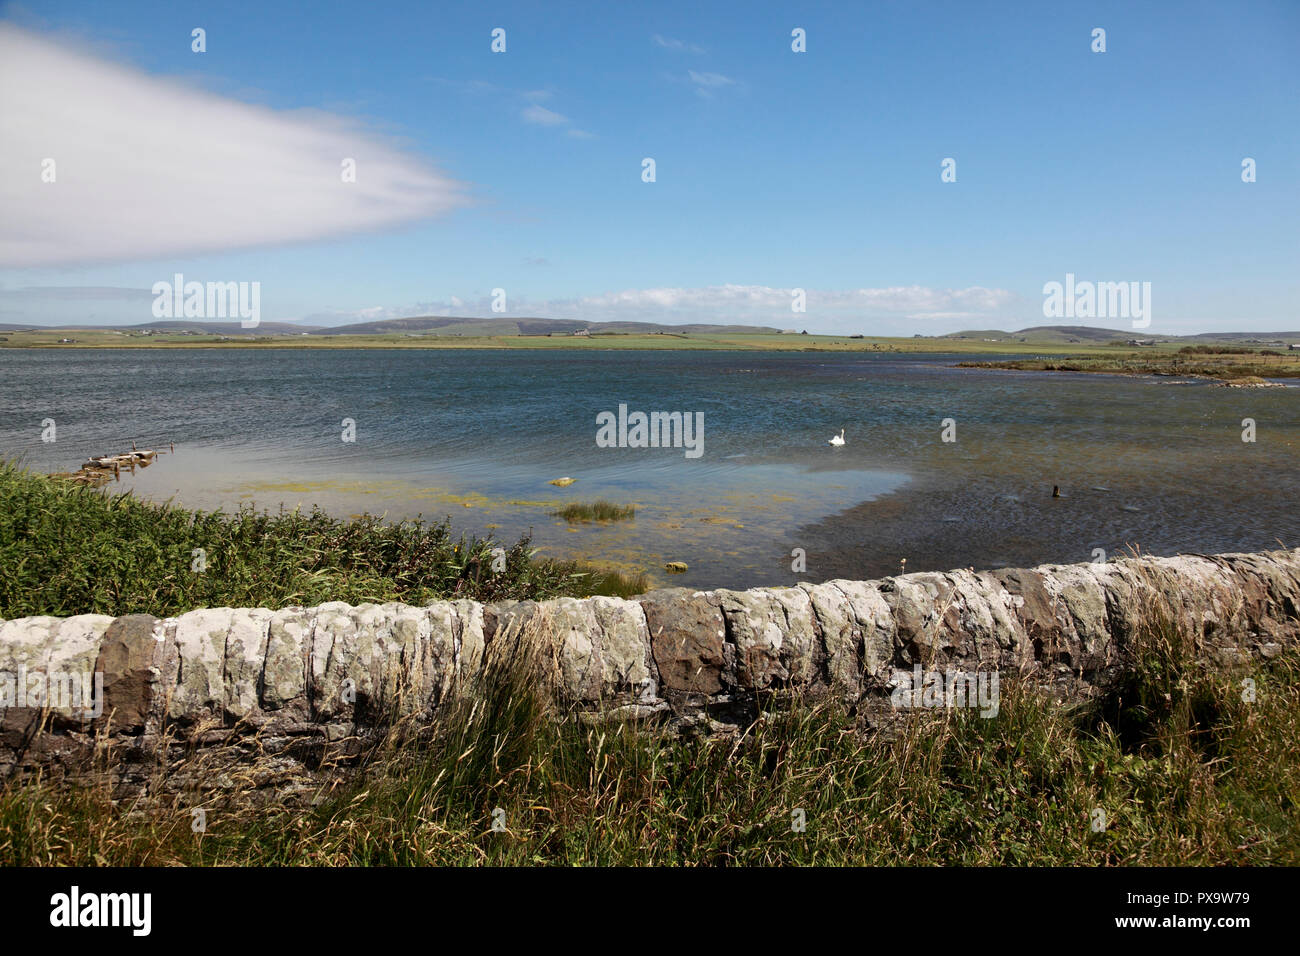 The Loch of Harray, the largest loch of mainland Orkney seen from the Bridge of Brodgar - Stock Image